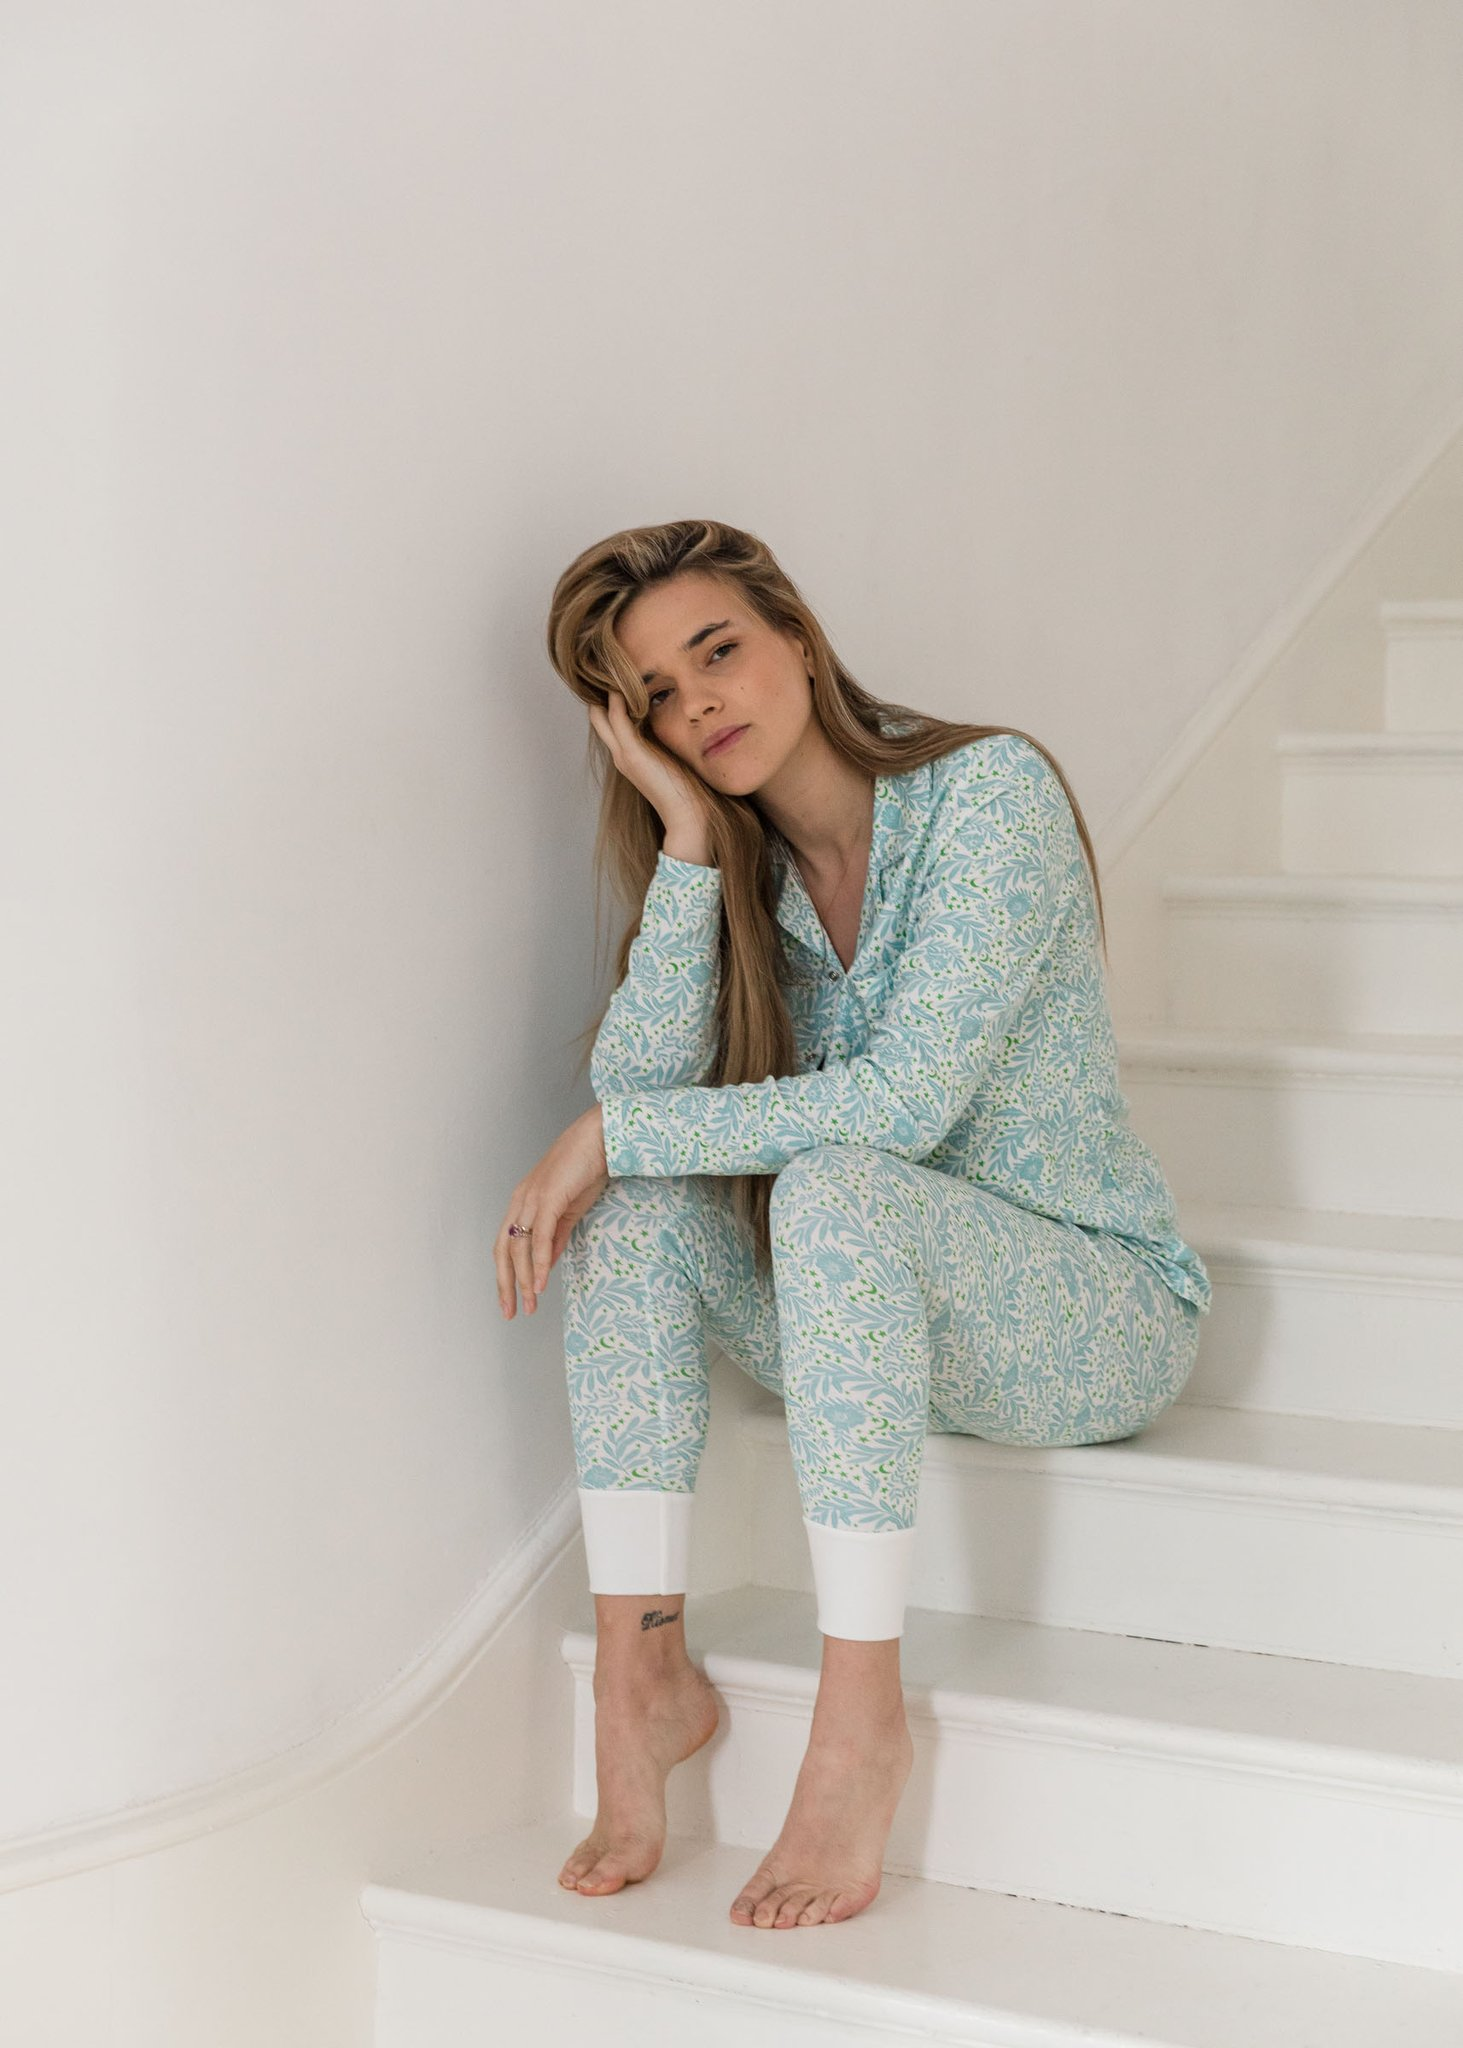 Sleepy Doe - Mumma Collar PJ set